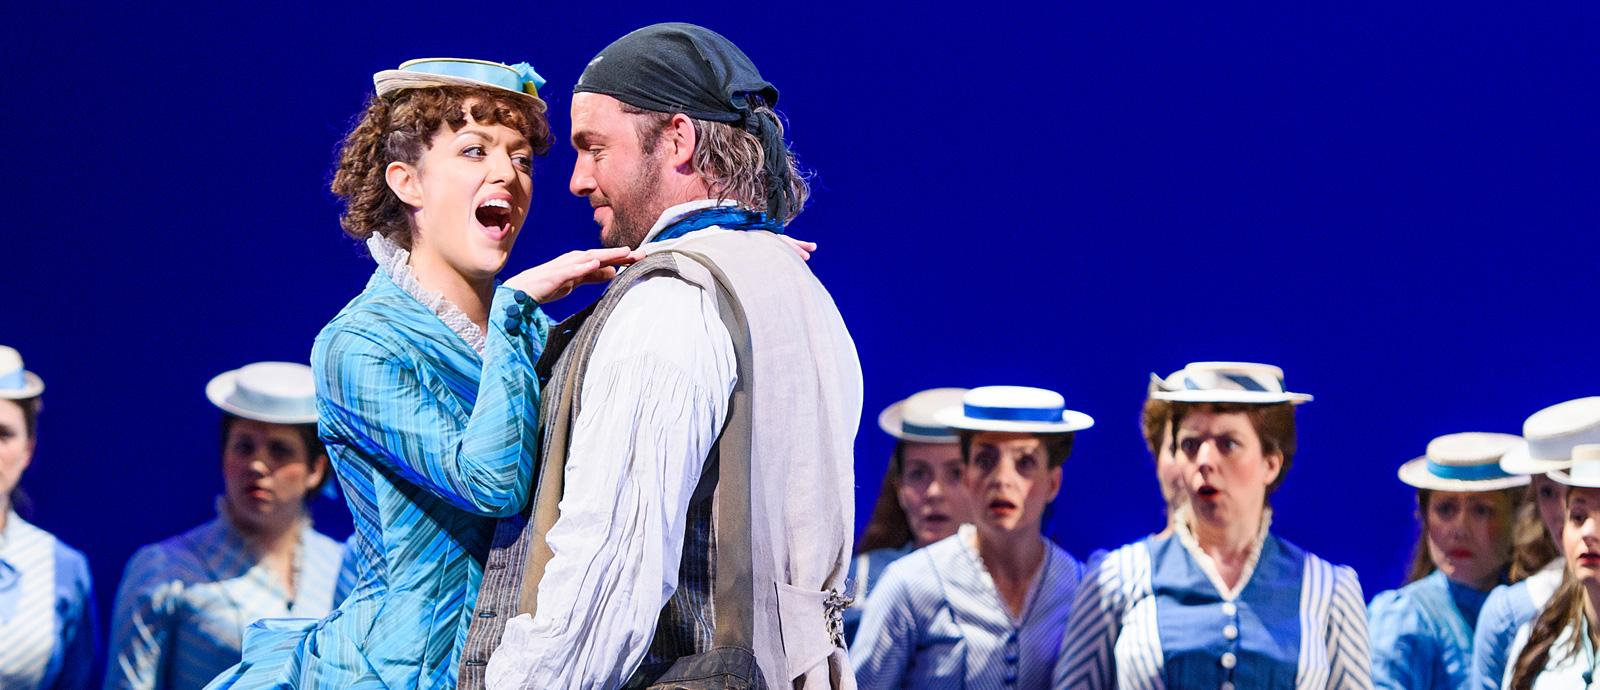 ENO's The Pirates of Penzance - Claudia Boyle as Mabel and Robert Murray as Frederic. Photo by Tristram Kenton